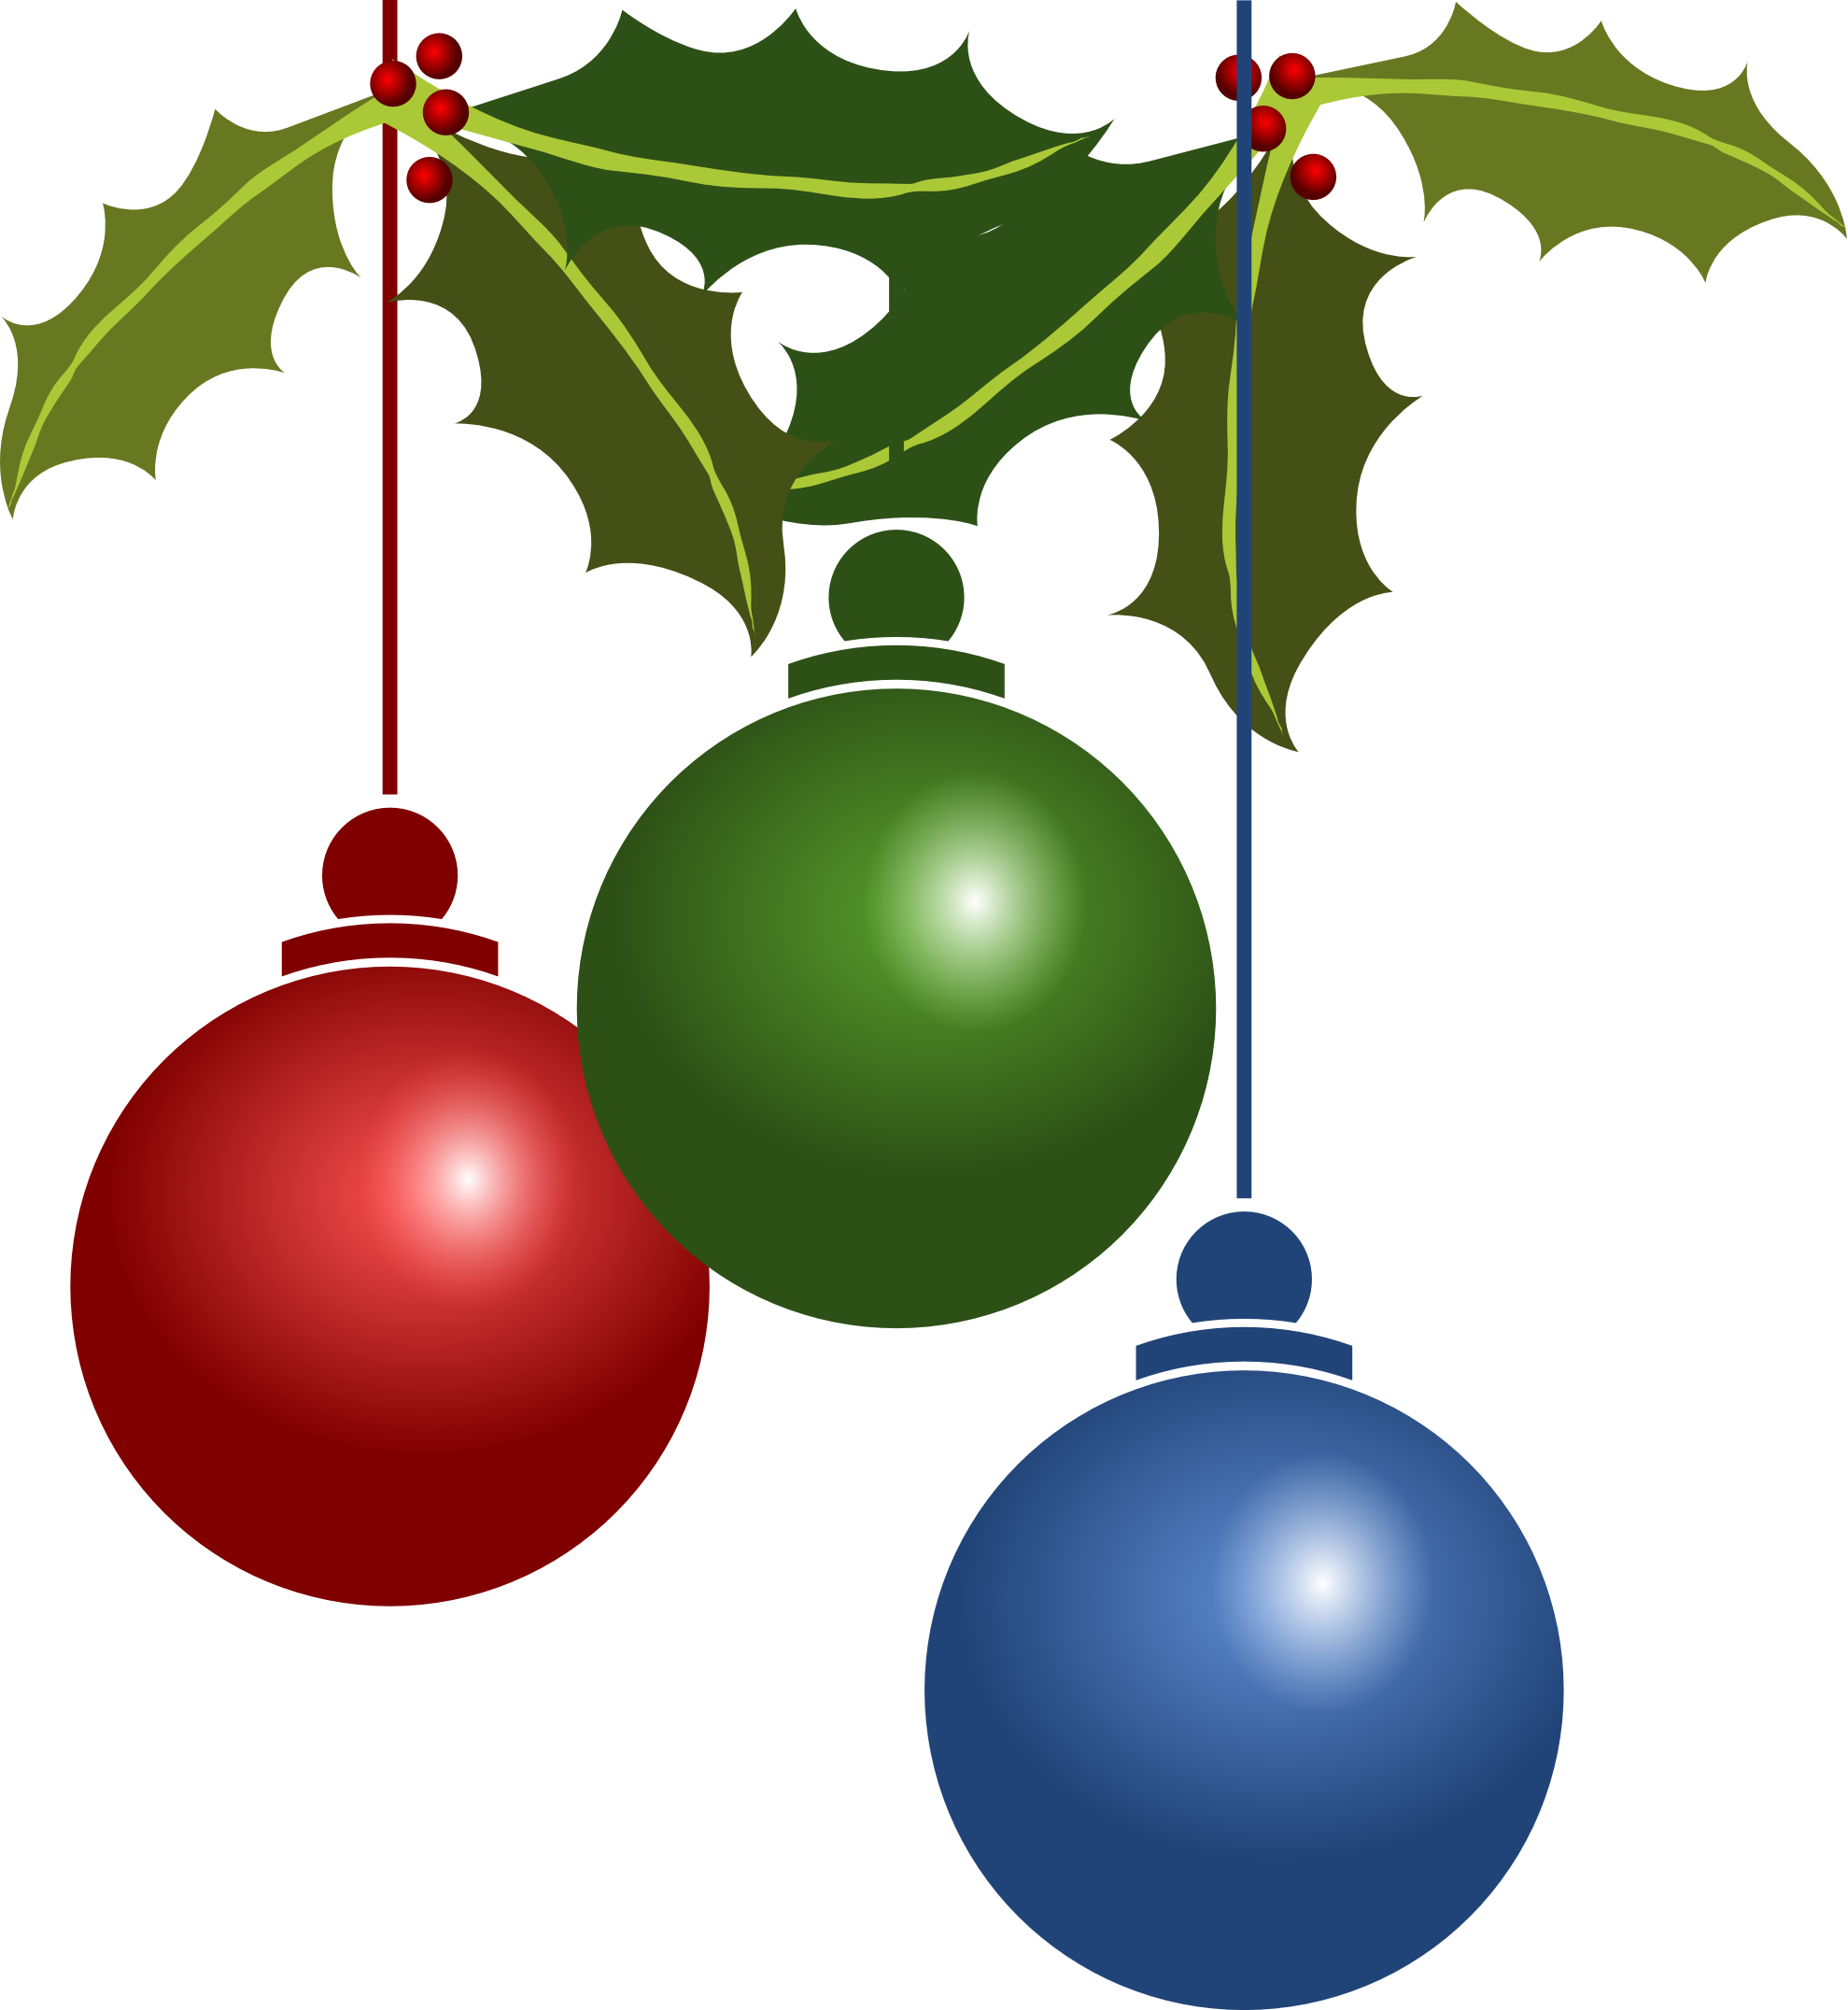 Holiday clipart #8, Download drawings